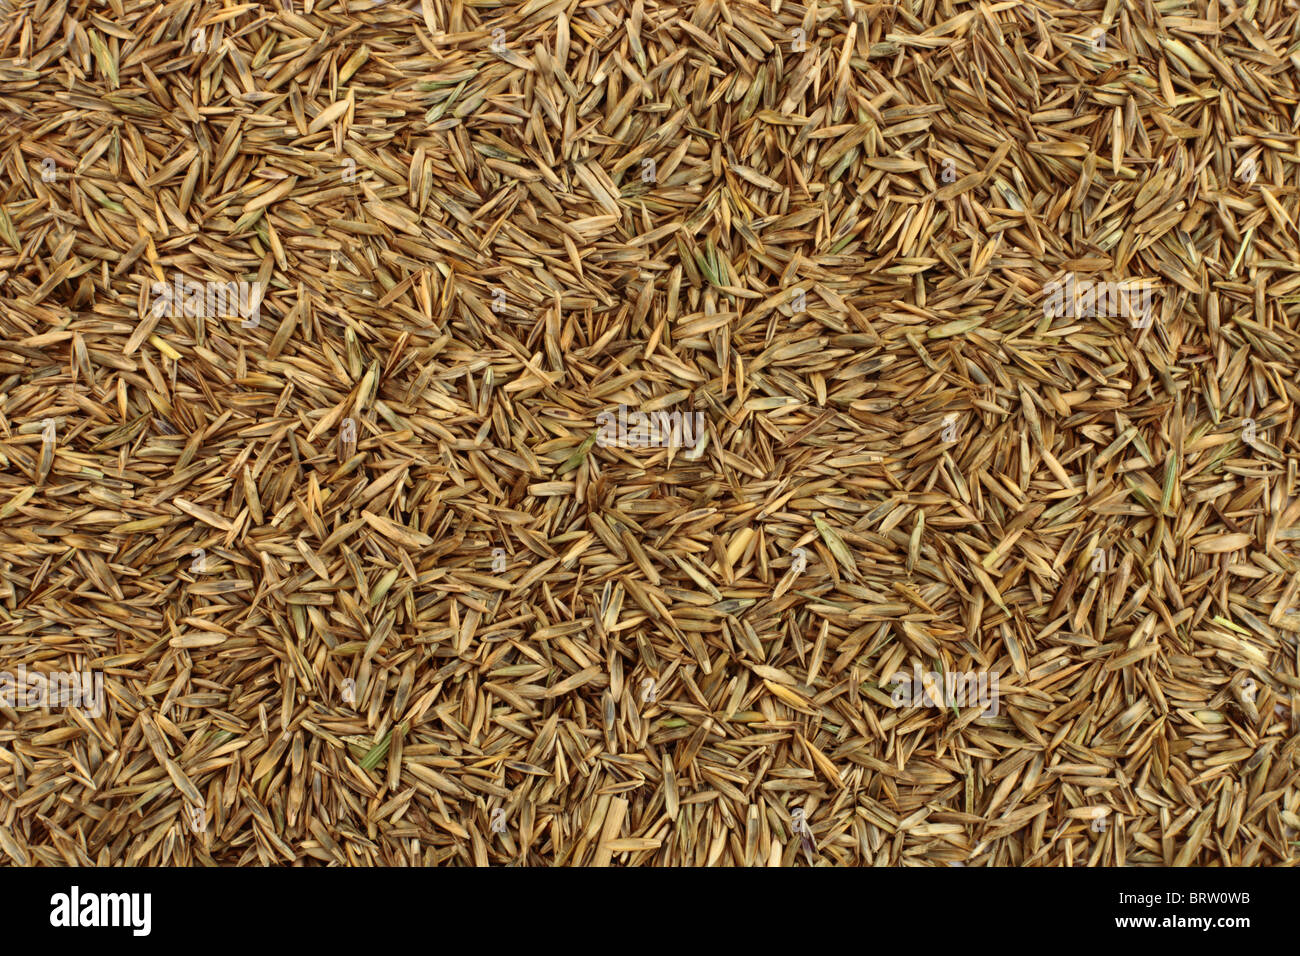 Grass seed background - Stock Image